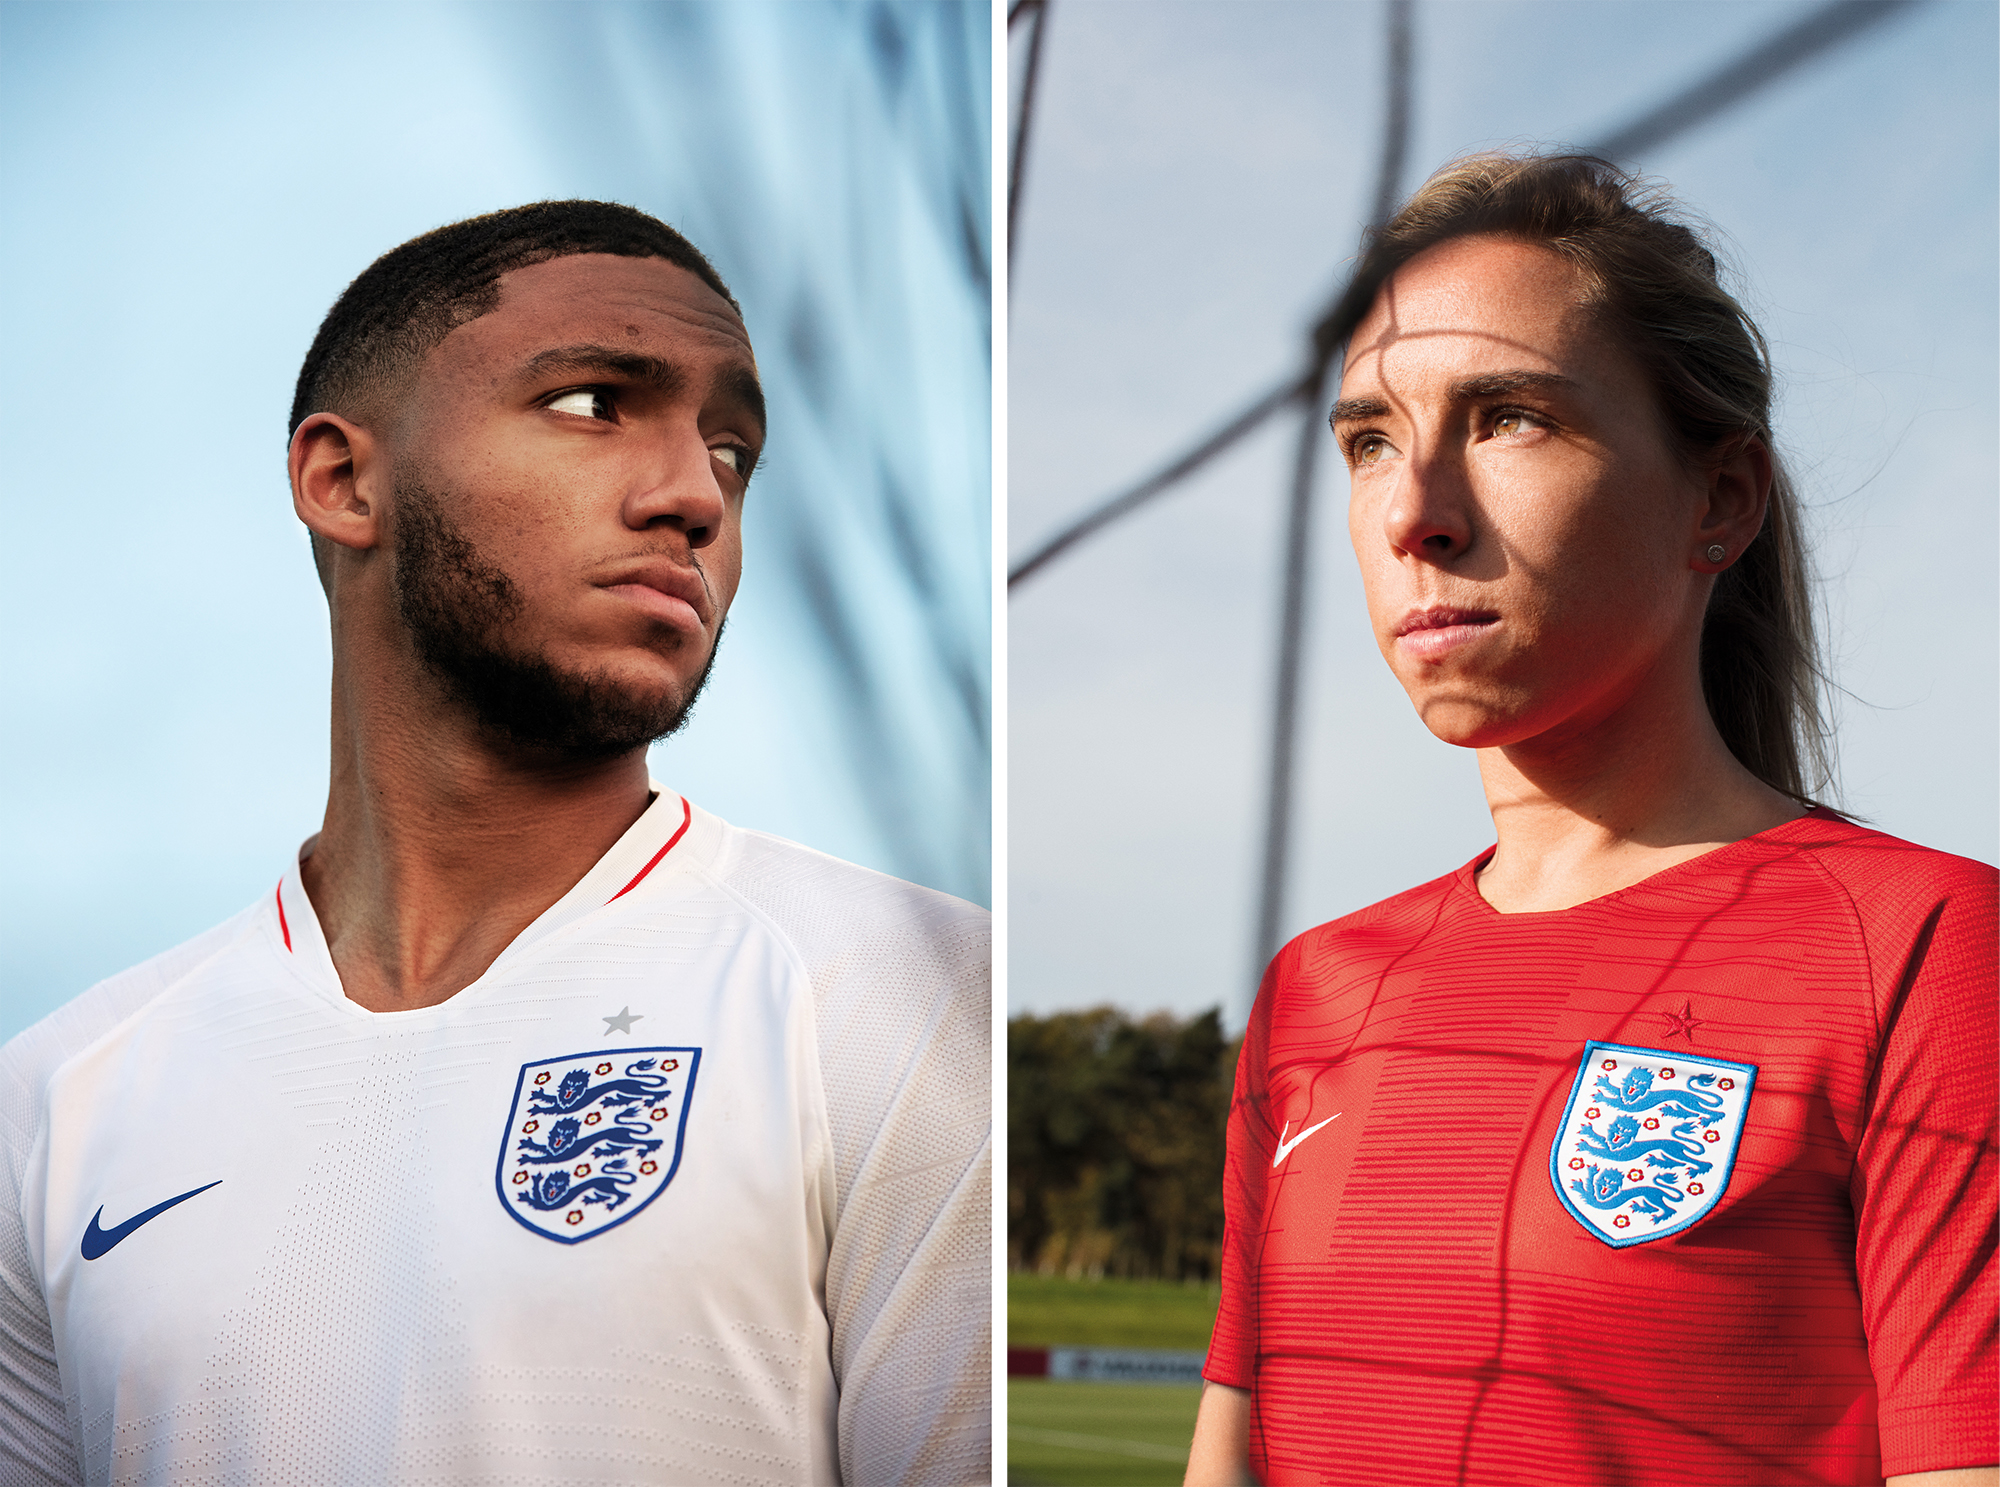 Wonderful England Kit World Cup 2018 - England-Collection-2018-04_77306-copy  You Should Have_842341 .jpg